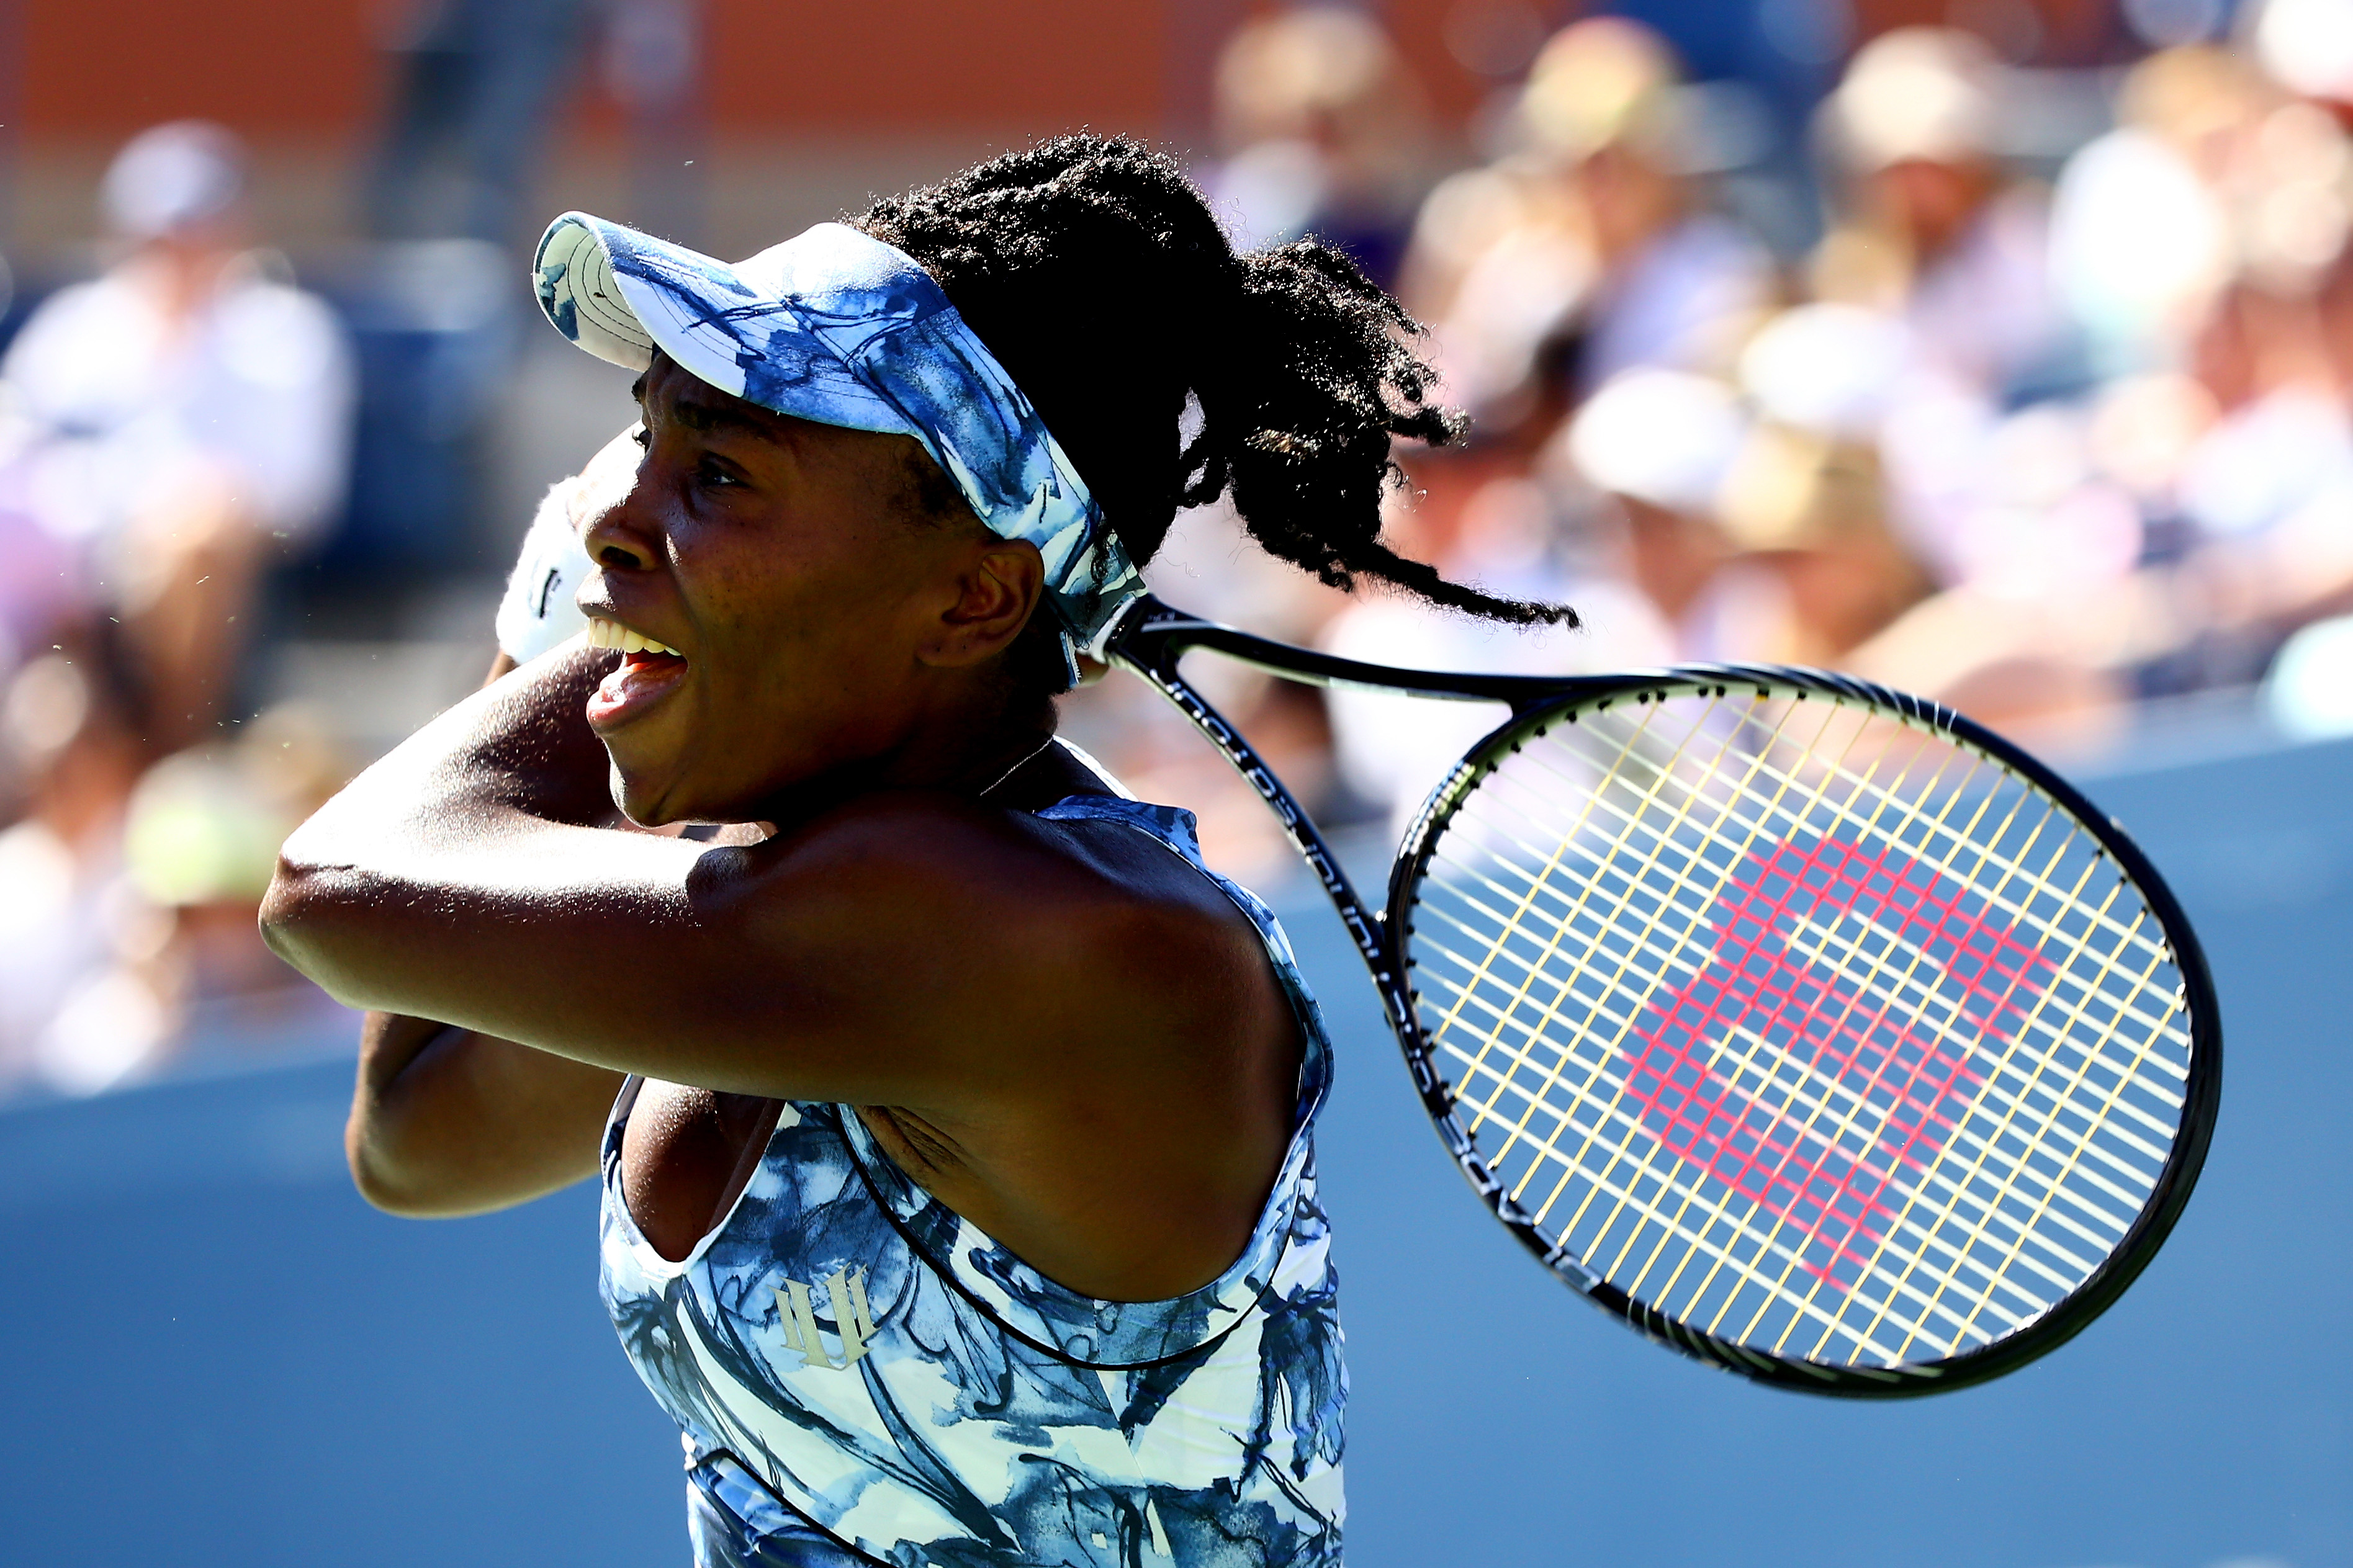 "<b>Venus Williams</b> Before her first professional tournament, when she was just 14 and wearing cornrows, Venus Williams had the audacity to tell Sports Illustrated, ""I think I can change the game."" That proved prescient. Williams — who honed her skills at a public park in Compton, Calif., while gang members guarded the grounds — brought explosive power to women's tennis, setting a Grand Slam record with her 129-m.p.h. serve in 2007."